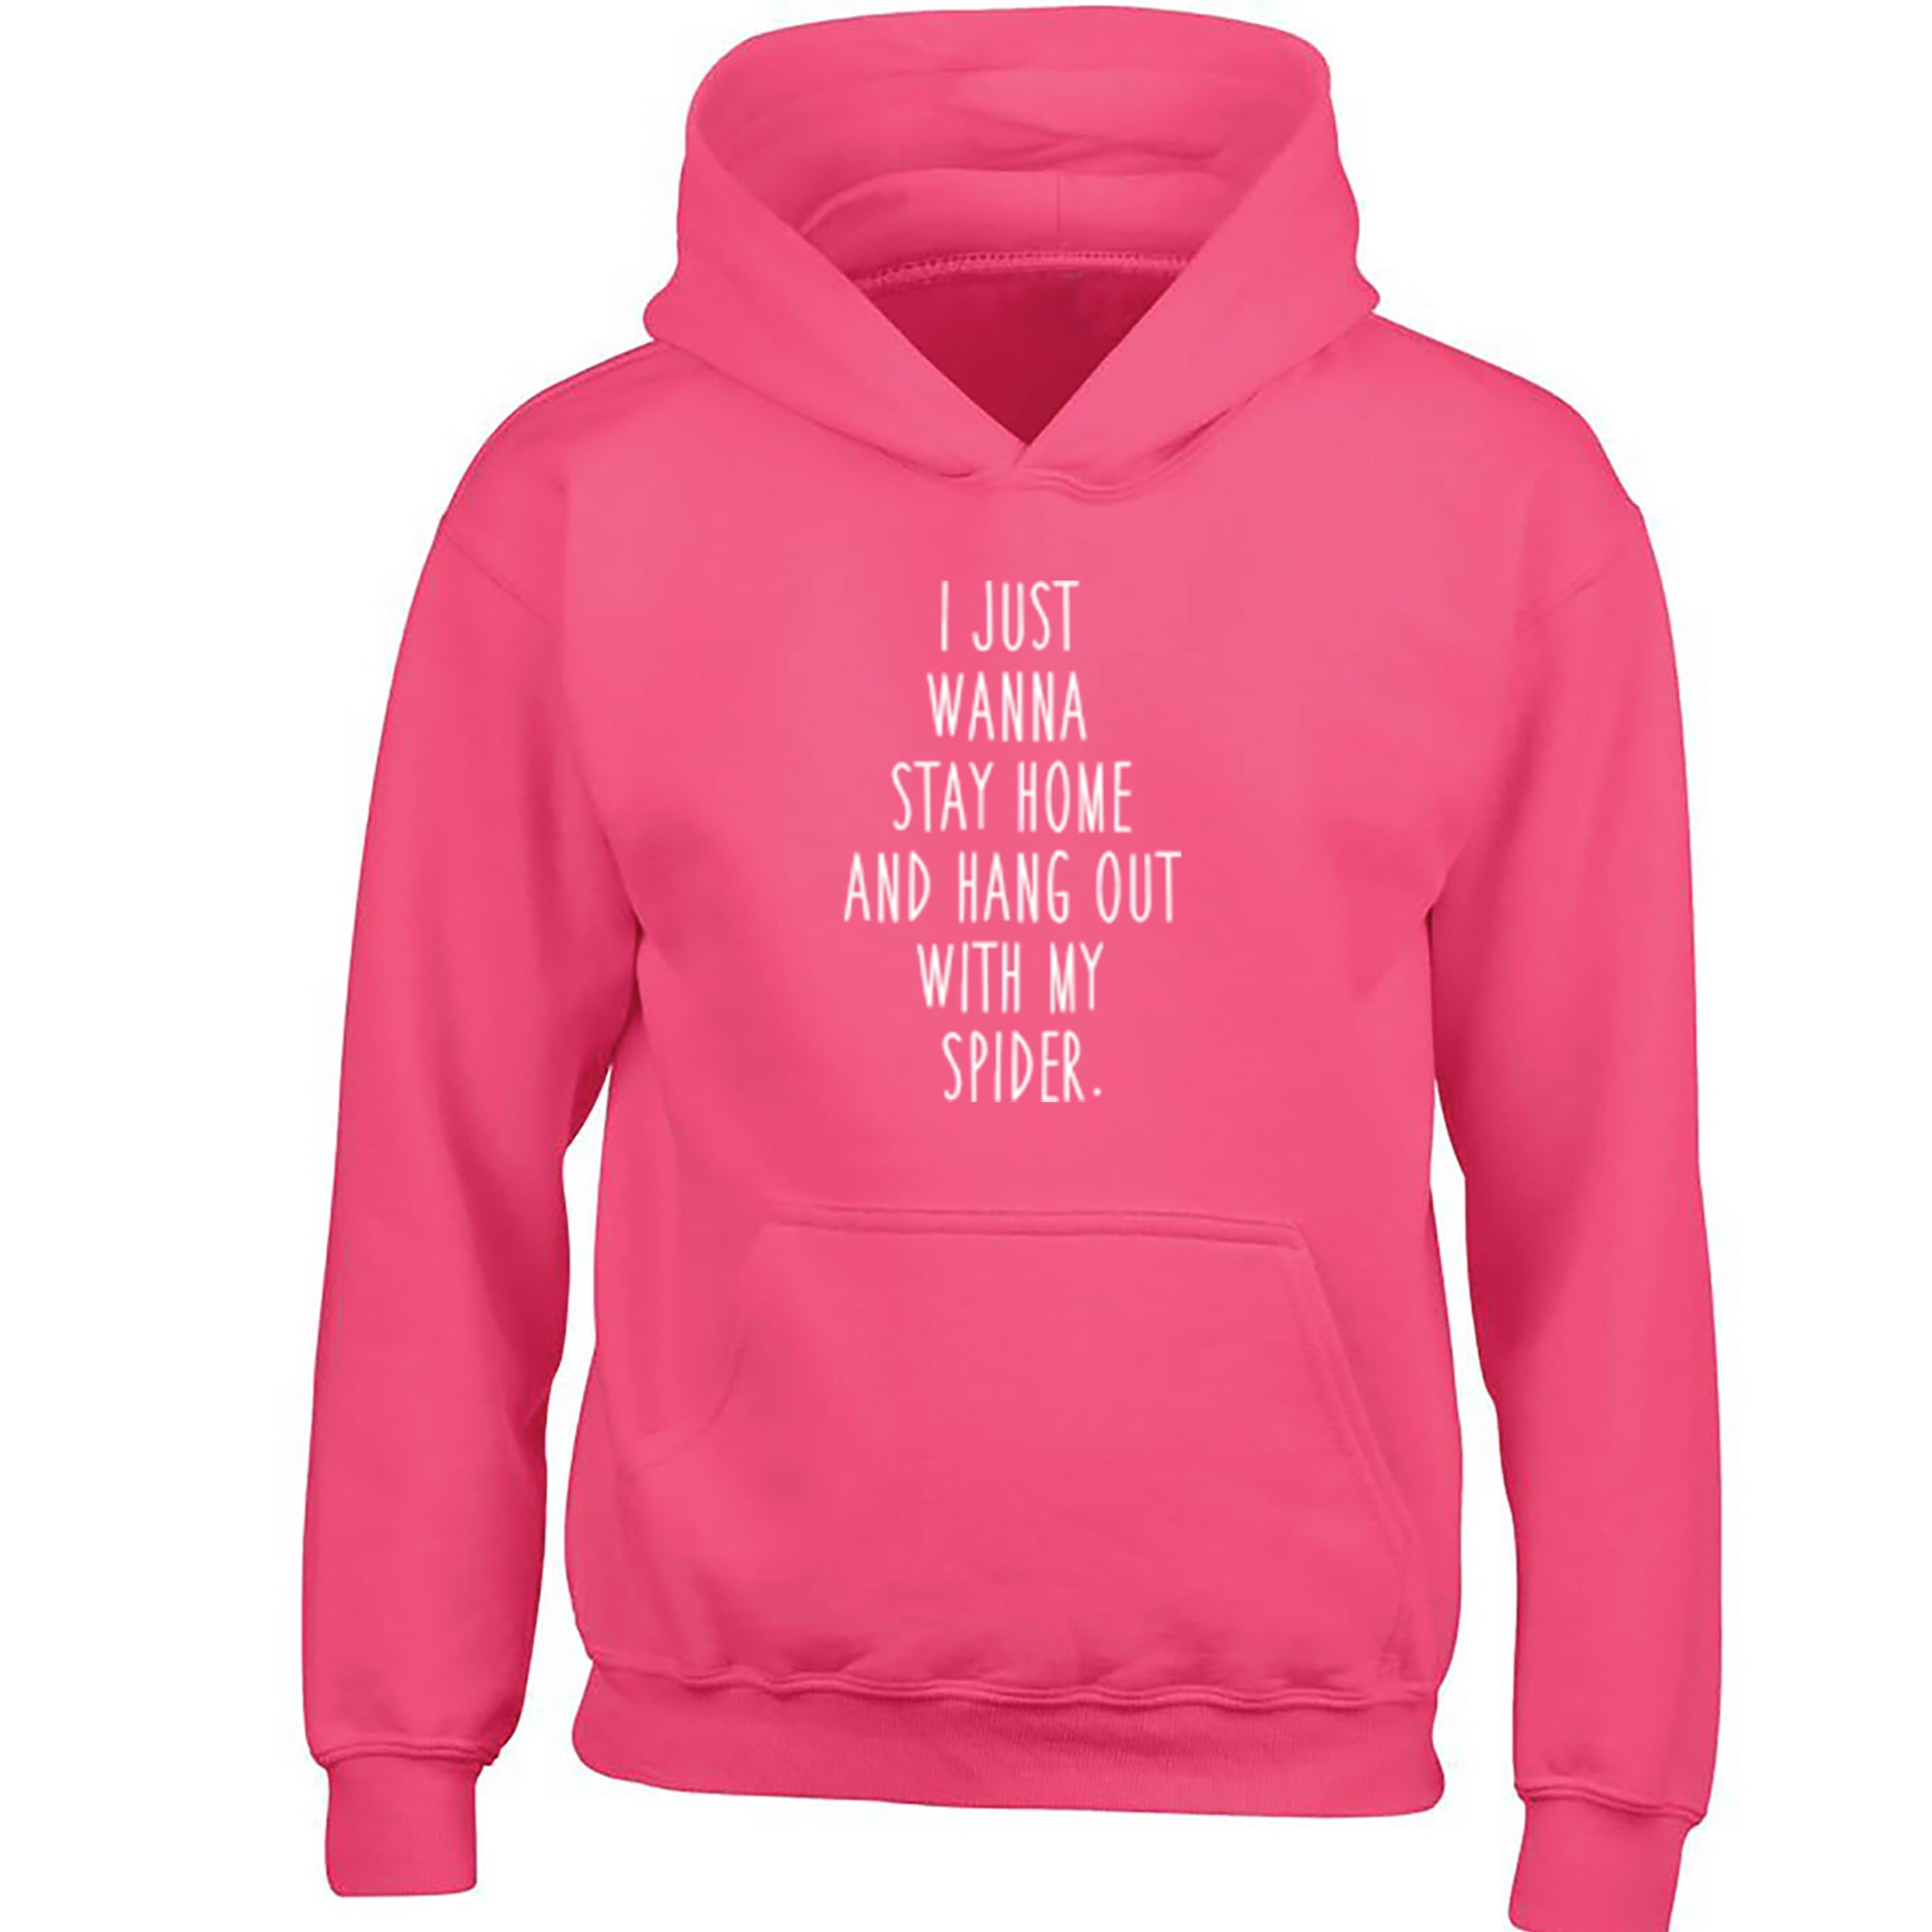 I Just Wanna Stay Home And Hang Out With My Spider Childrens Ages 3/4-12/14 Printed Hoodie S0846 - Illustrated Identity Ltd.